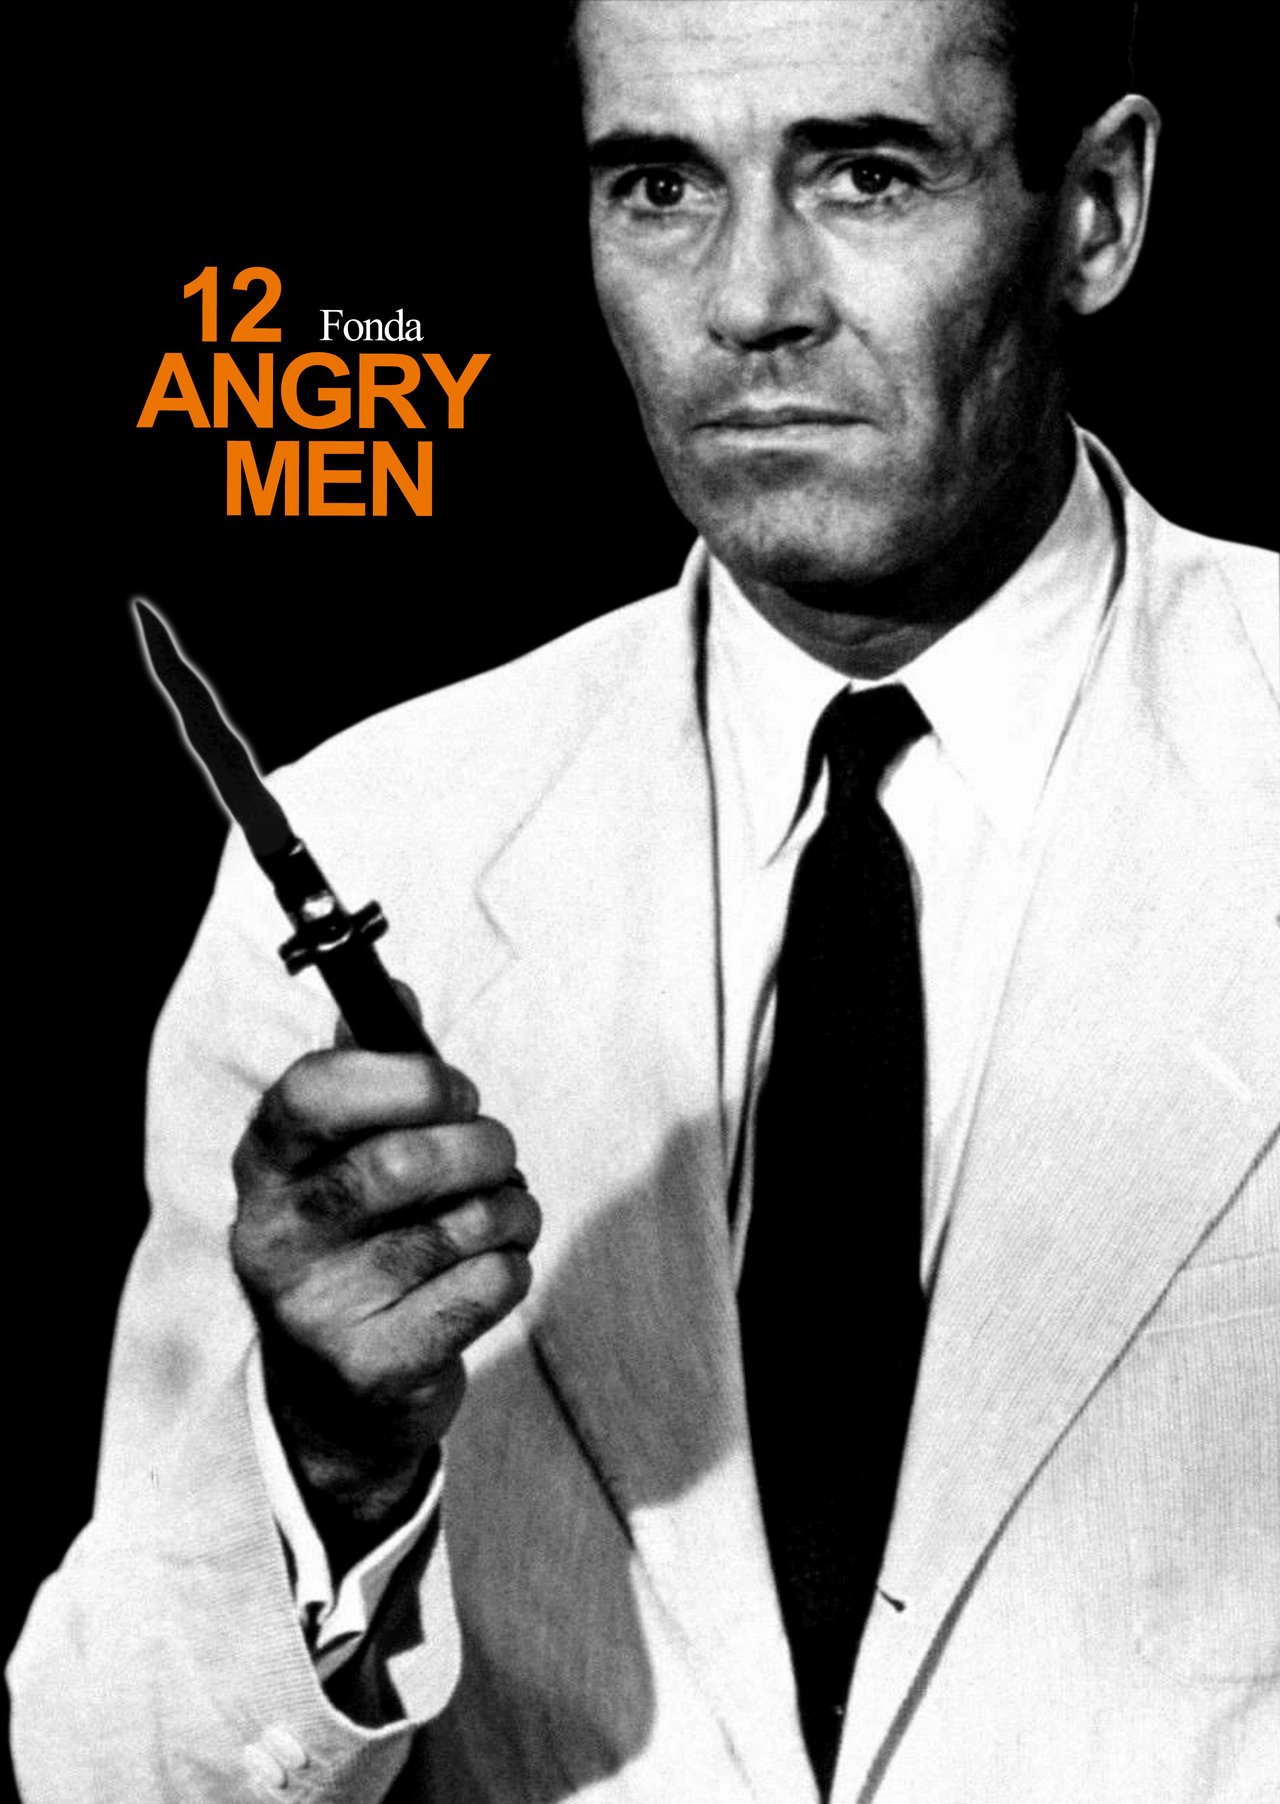 12 Angry Men Wallpapers High Quality Download Free